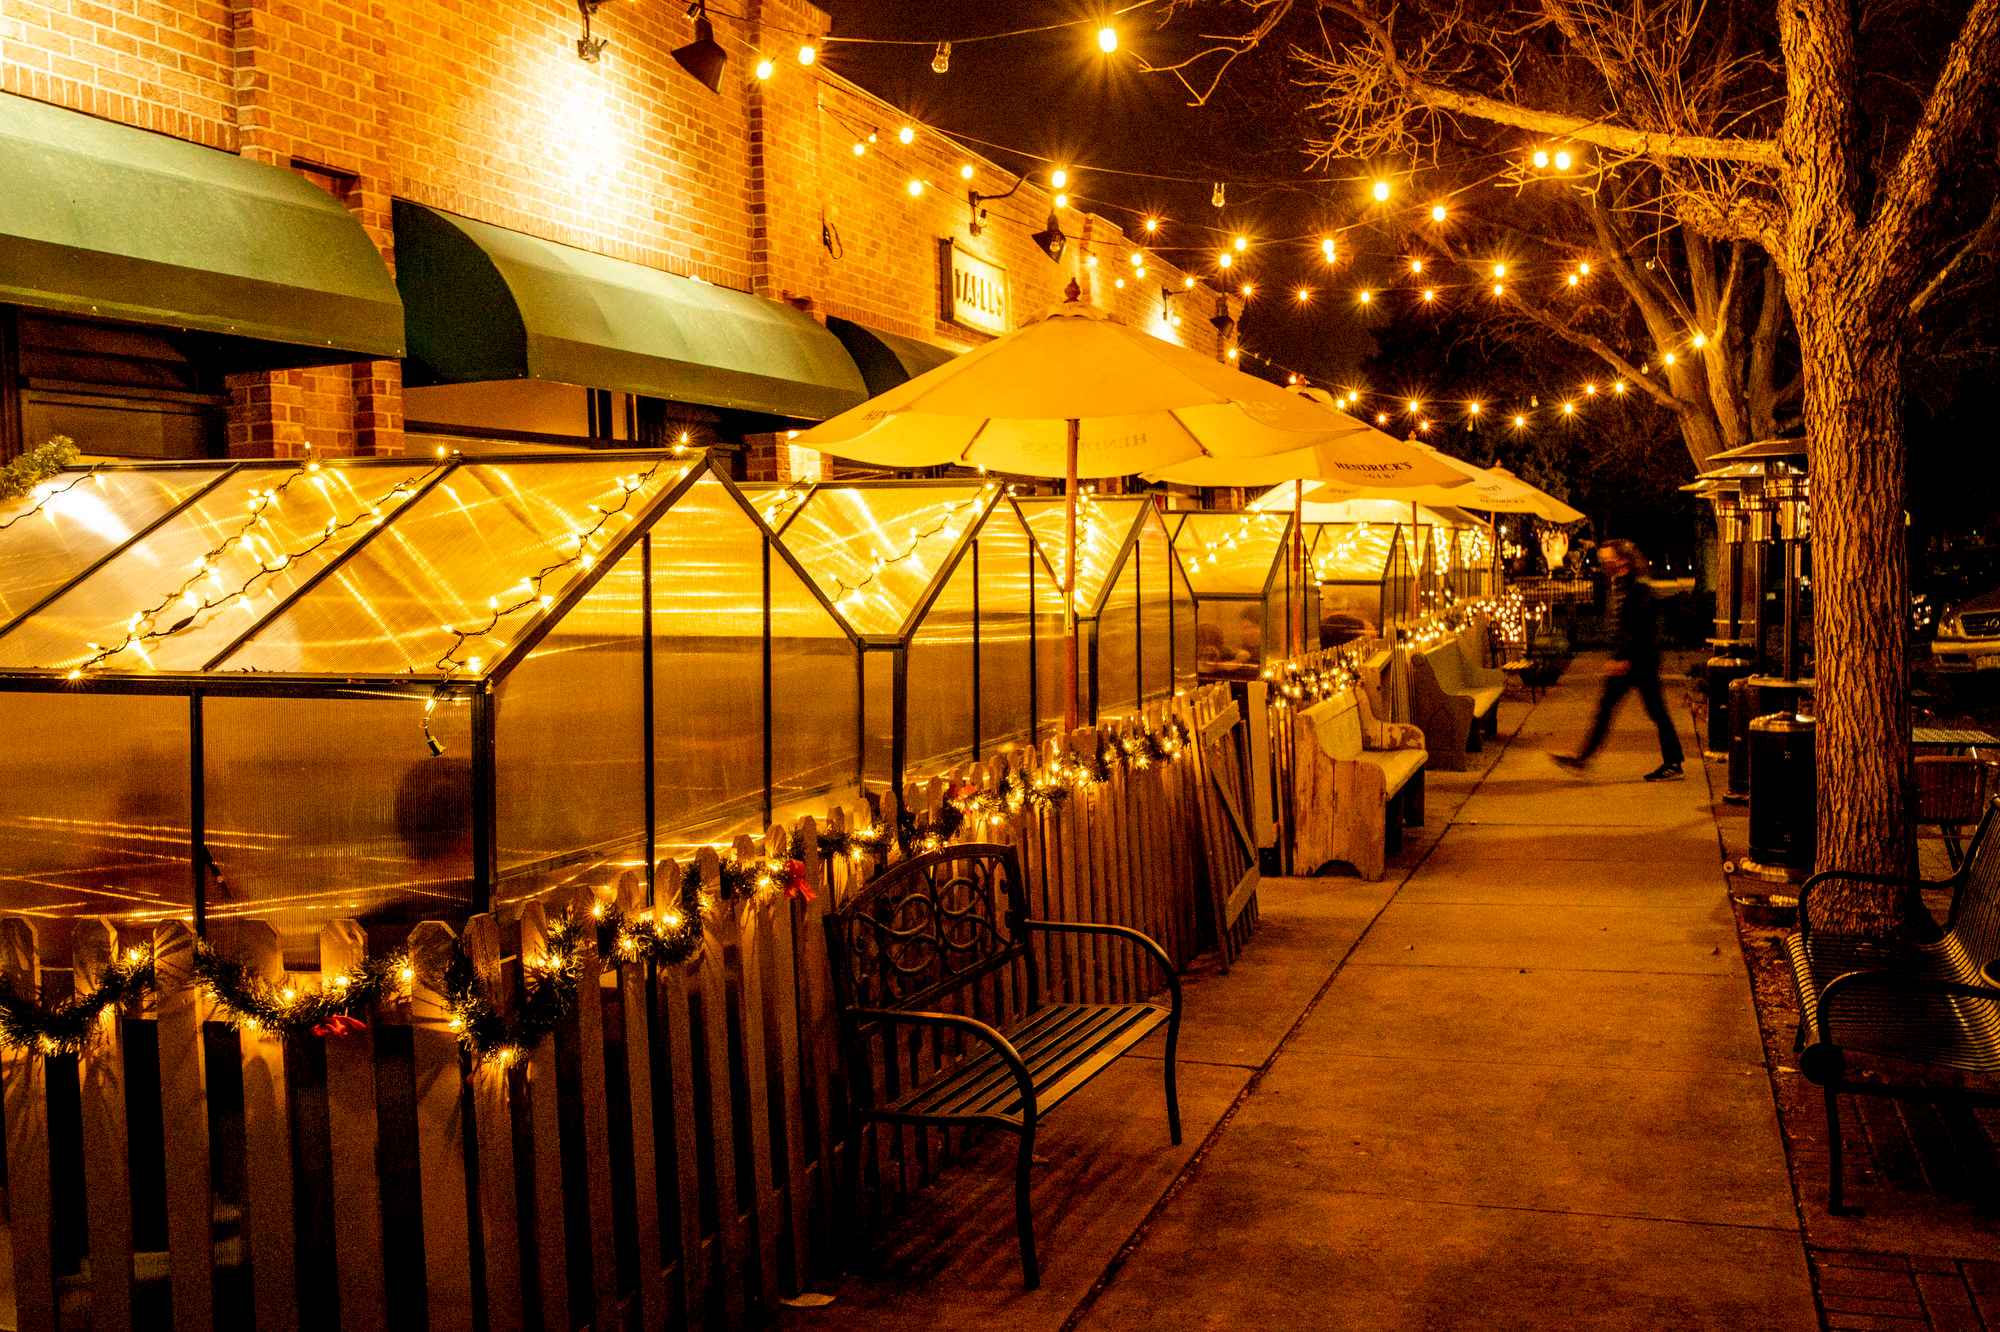 HOLIDAY-BUSINESS-RESTAURANTS-COVID-DENVER